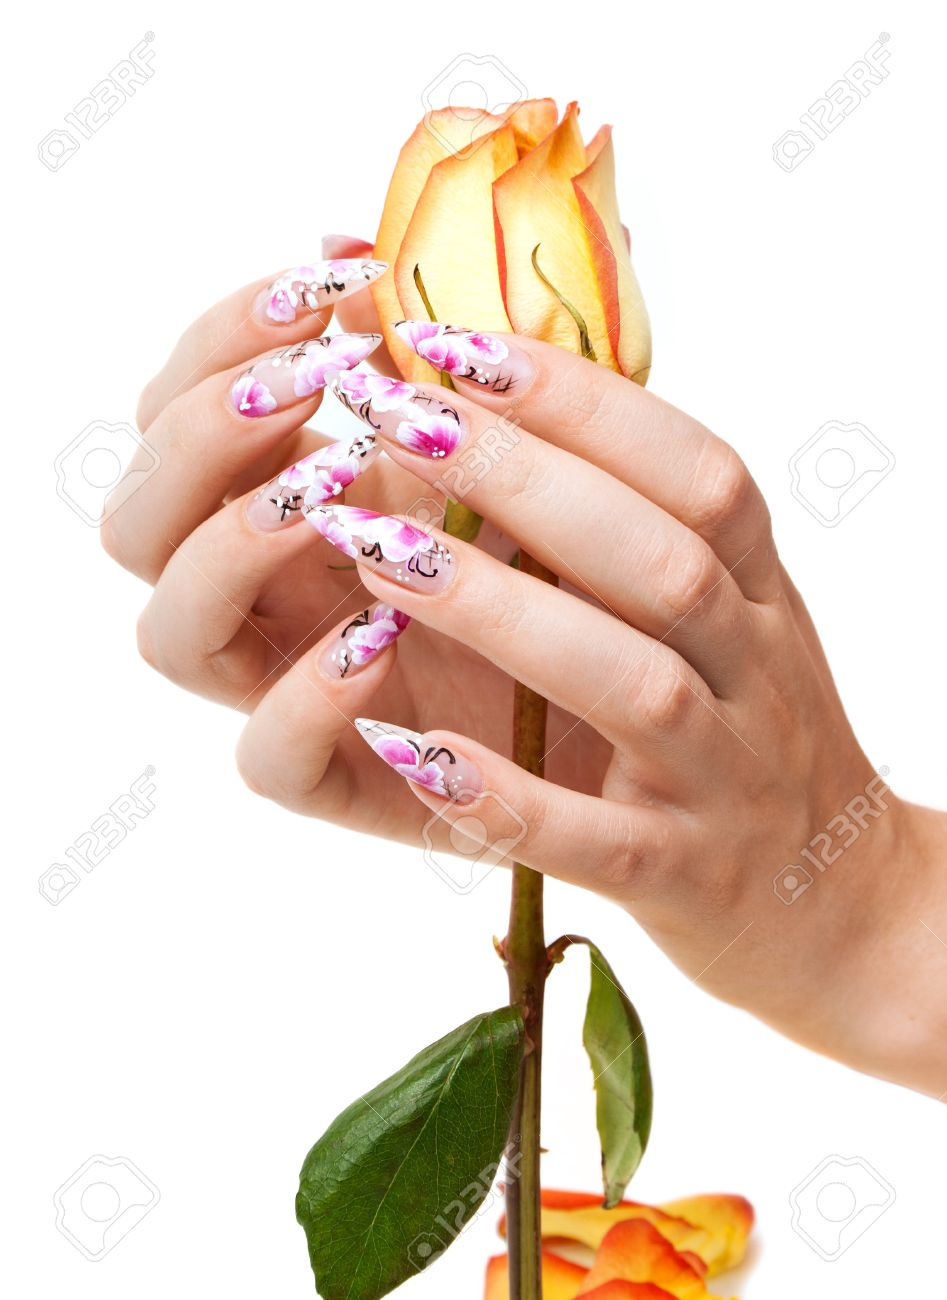 Two hands of the girl with beautiful nails hold a rose, on a white background Stock Photo - 10183532